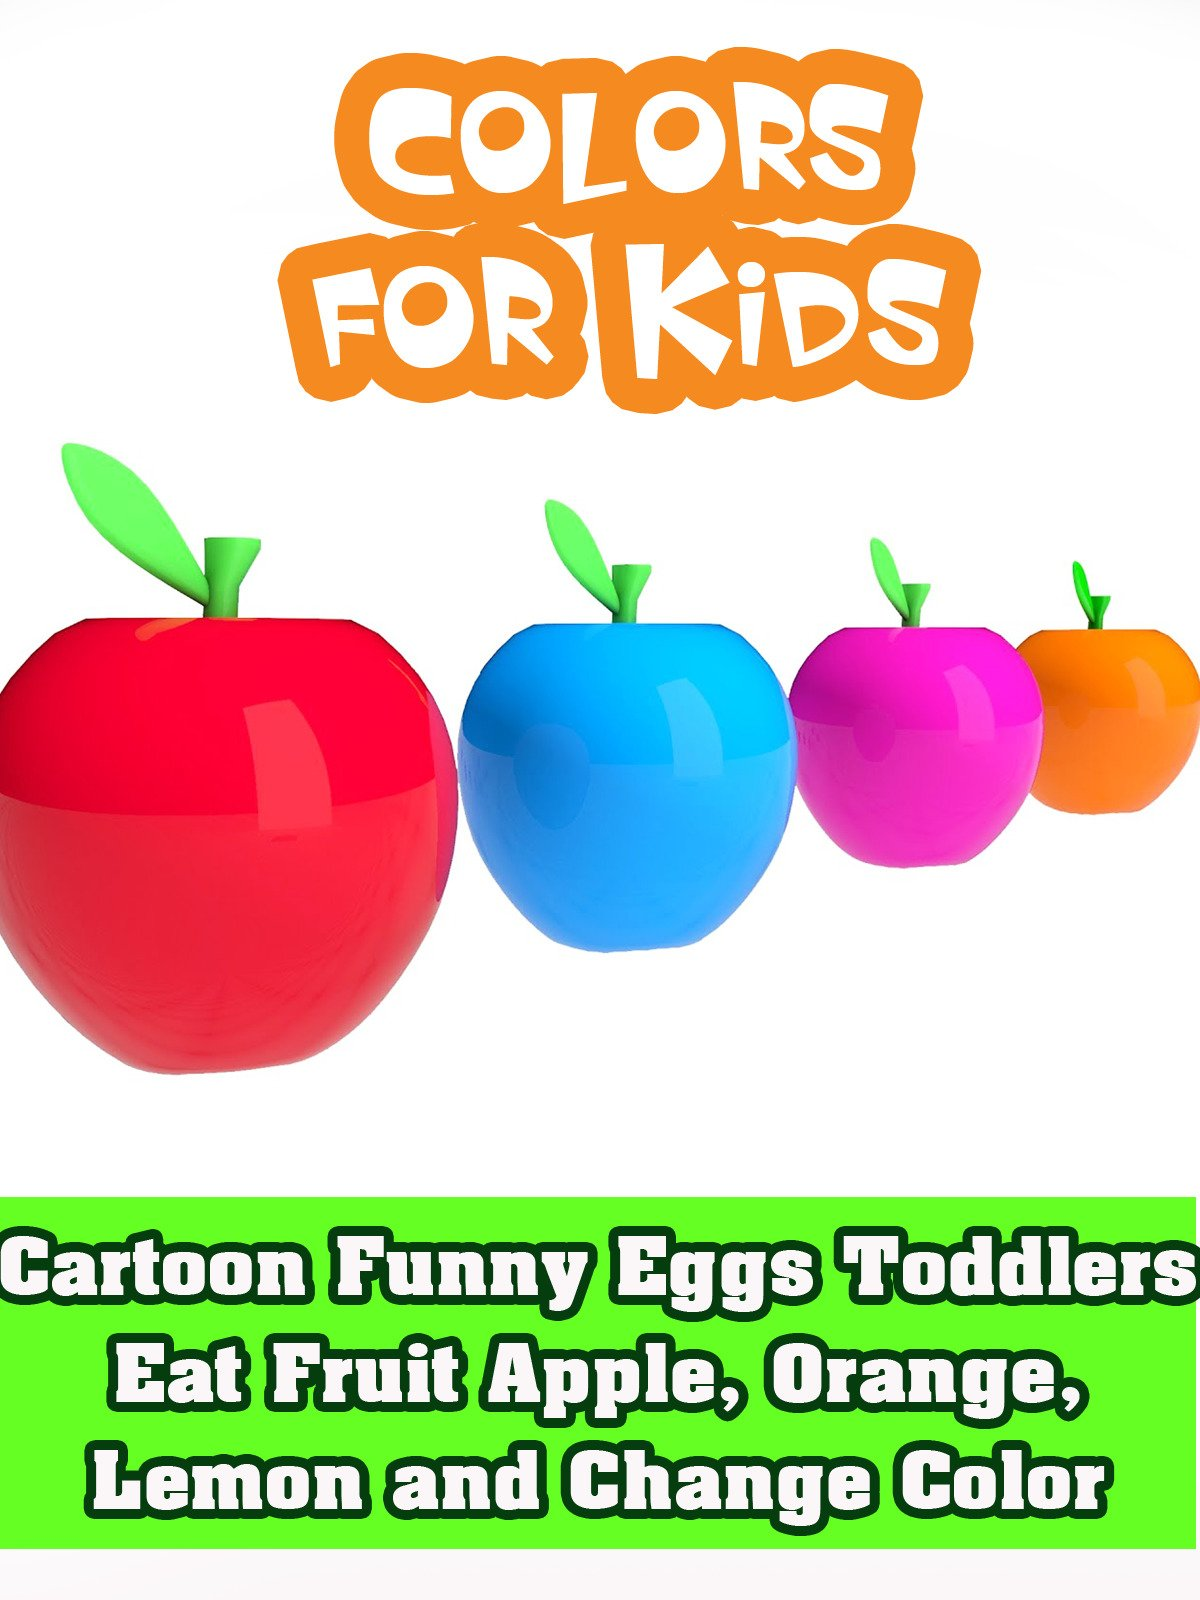 Cartoon Funny Eggs Toddlers Eat Fruit Apple, Orange, Lemon and Change Color